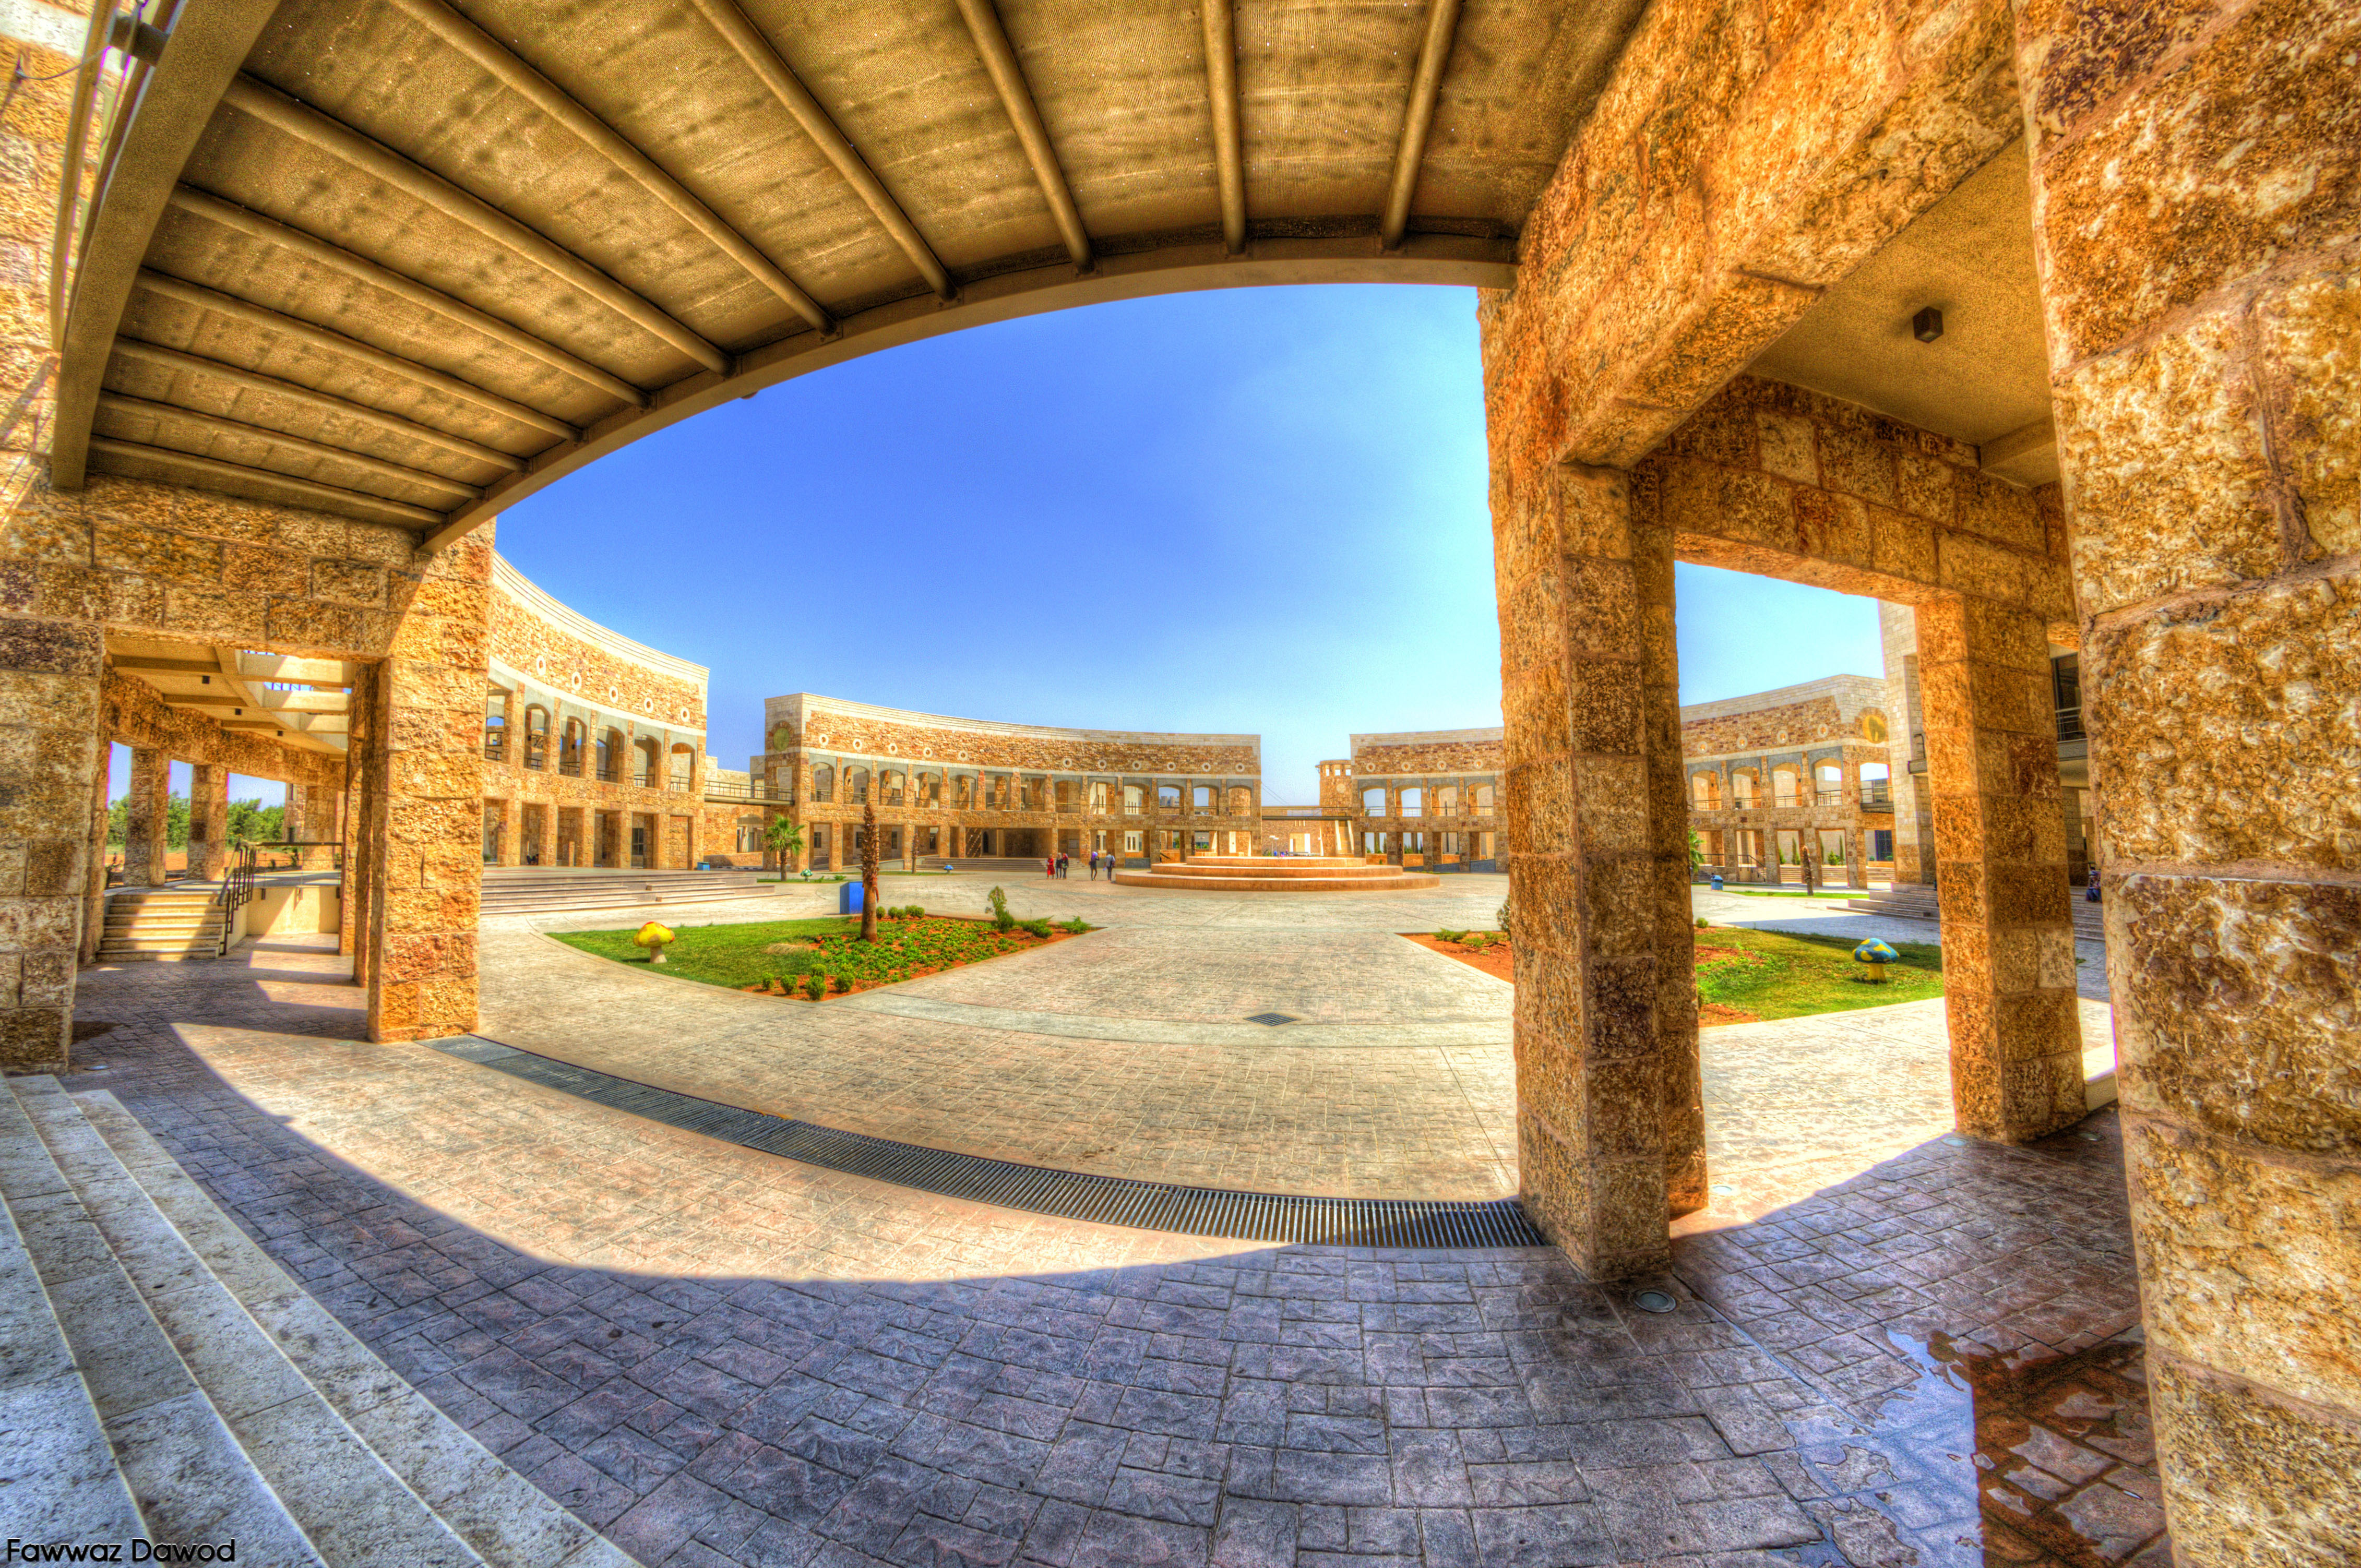 Jordan_University_of_Science_and_Technology's_Library